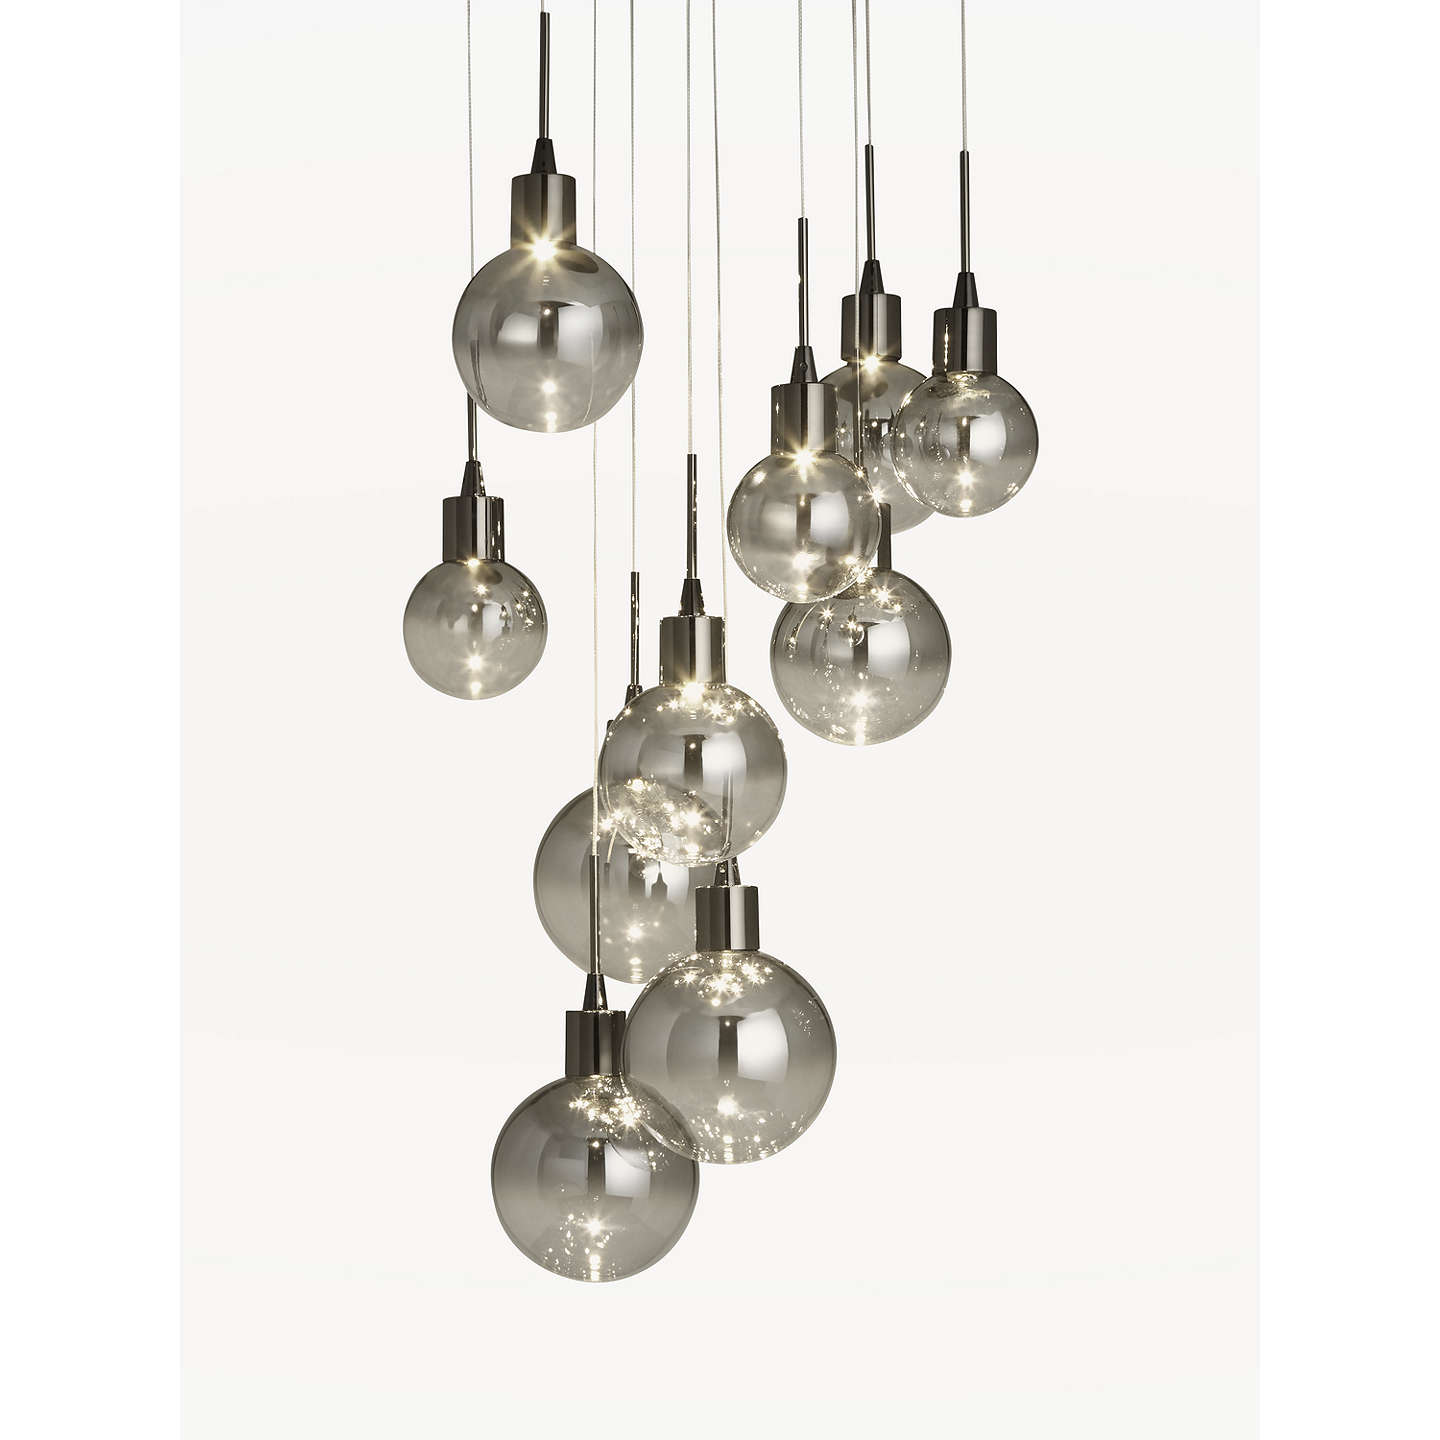 John lewis dano led ombre glass ceiling light 10 light smoke at buyjohn lewis dano led ombre glass ceiling light 10 light smoke online at johnlewis arubaitofo Choice Image